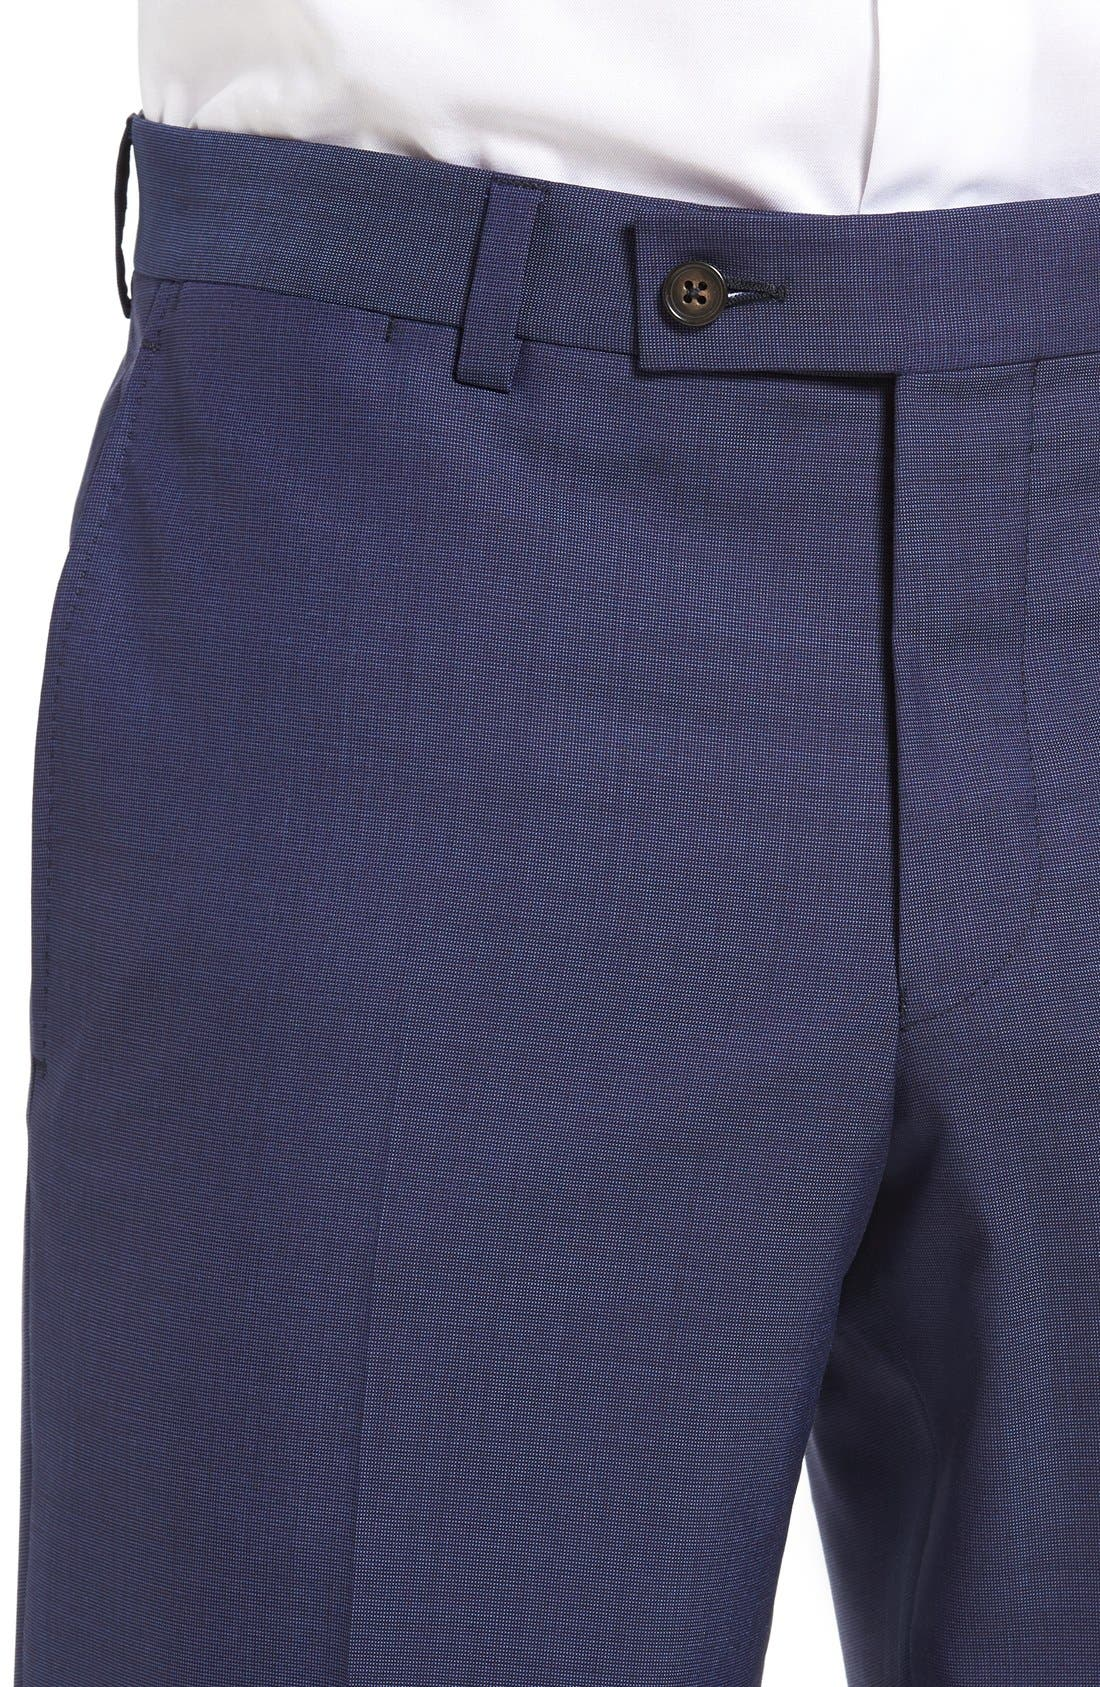 TED BAKER LONDON, Jefferson Flat Front Solid Wool Trousers, Alternate thumbnail 10, color, BLUE